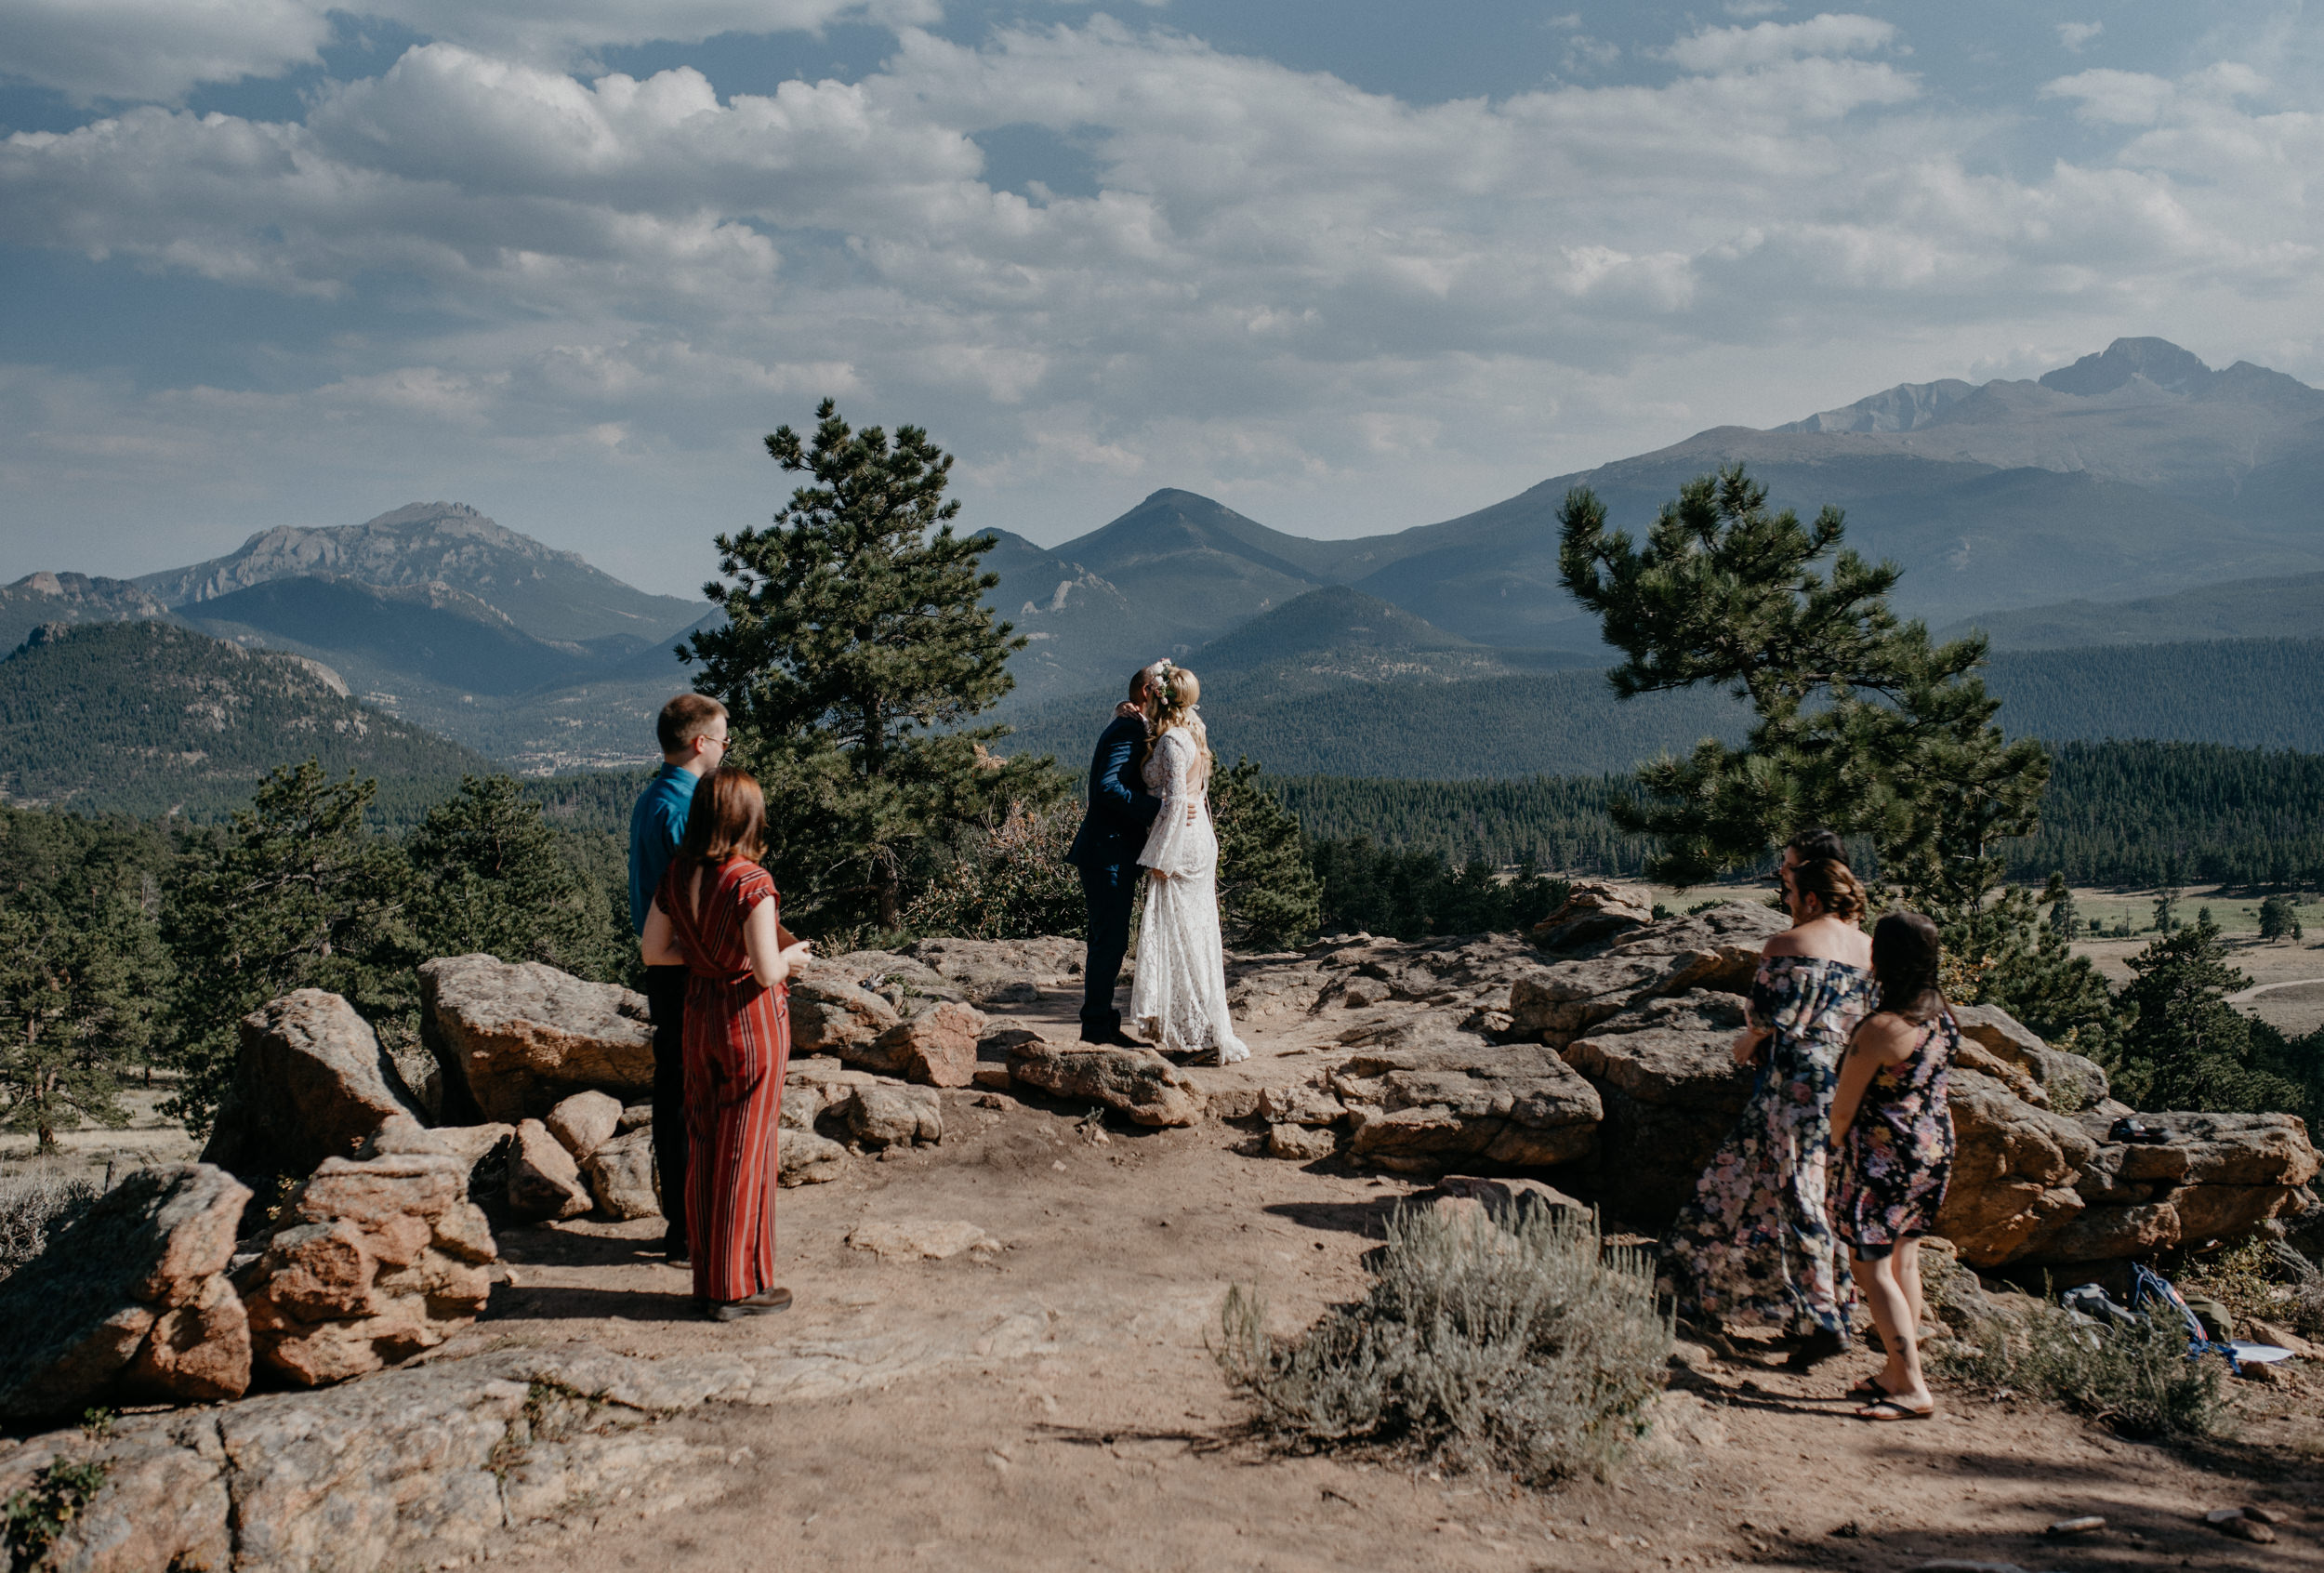 Ceremony at 3M curve in Rocky Mountain National Park. Colorado based elopement and wedding photographer.